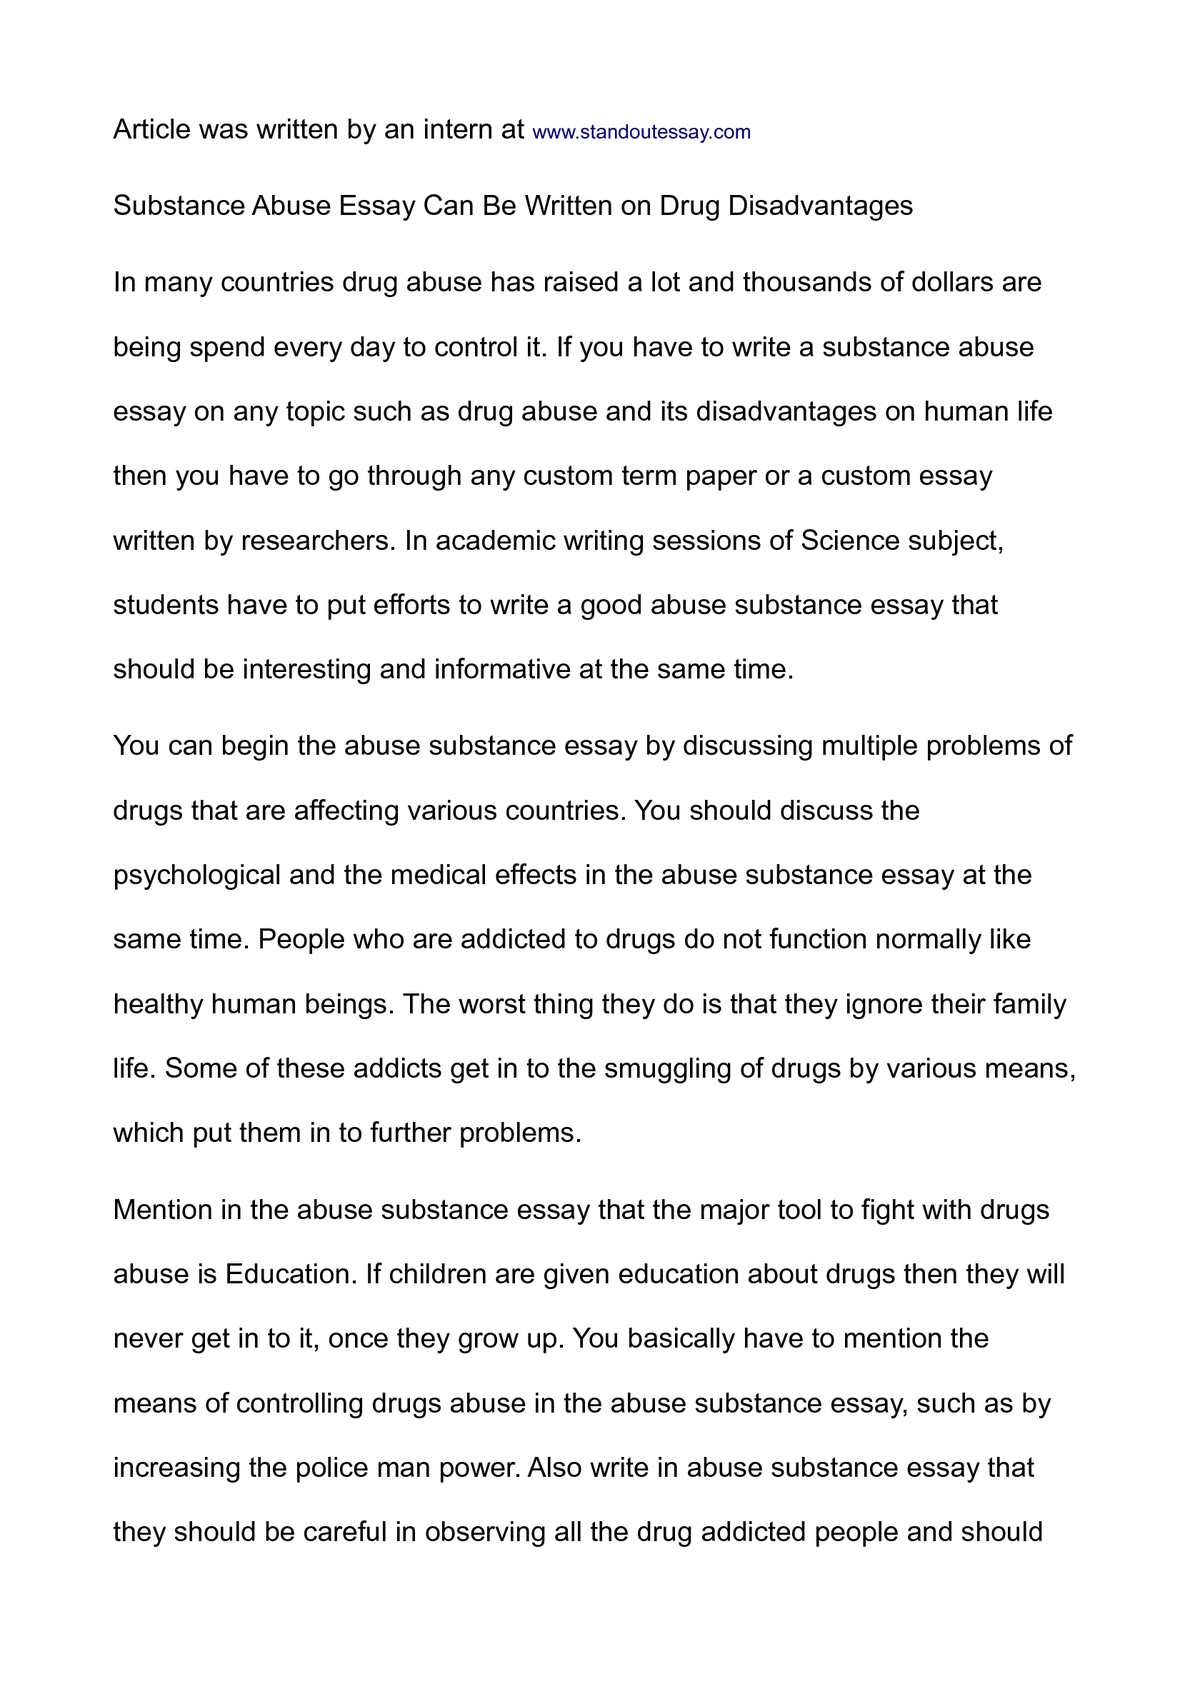 persuasive essay on drugs prescription drug abuse essay persuasive  prescription drug abuse essay substance abuse essay essays english essay drug abuse and